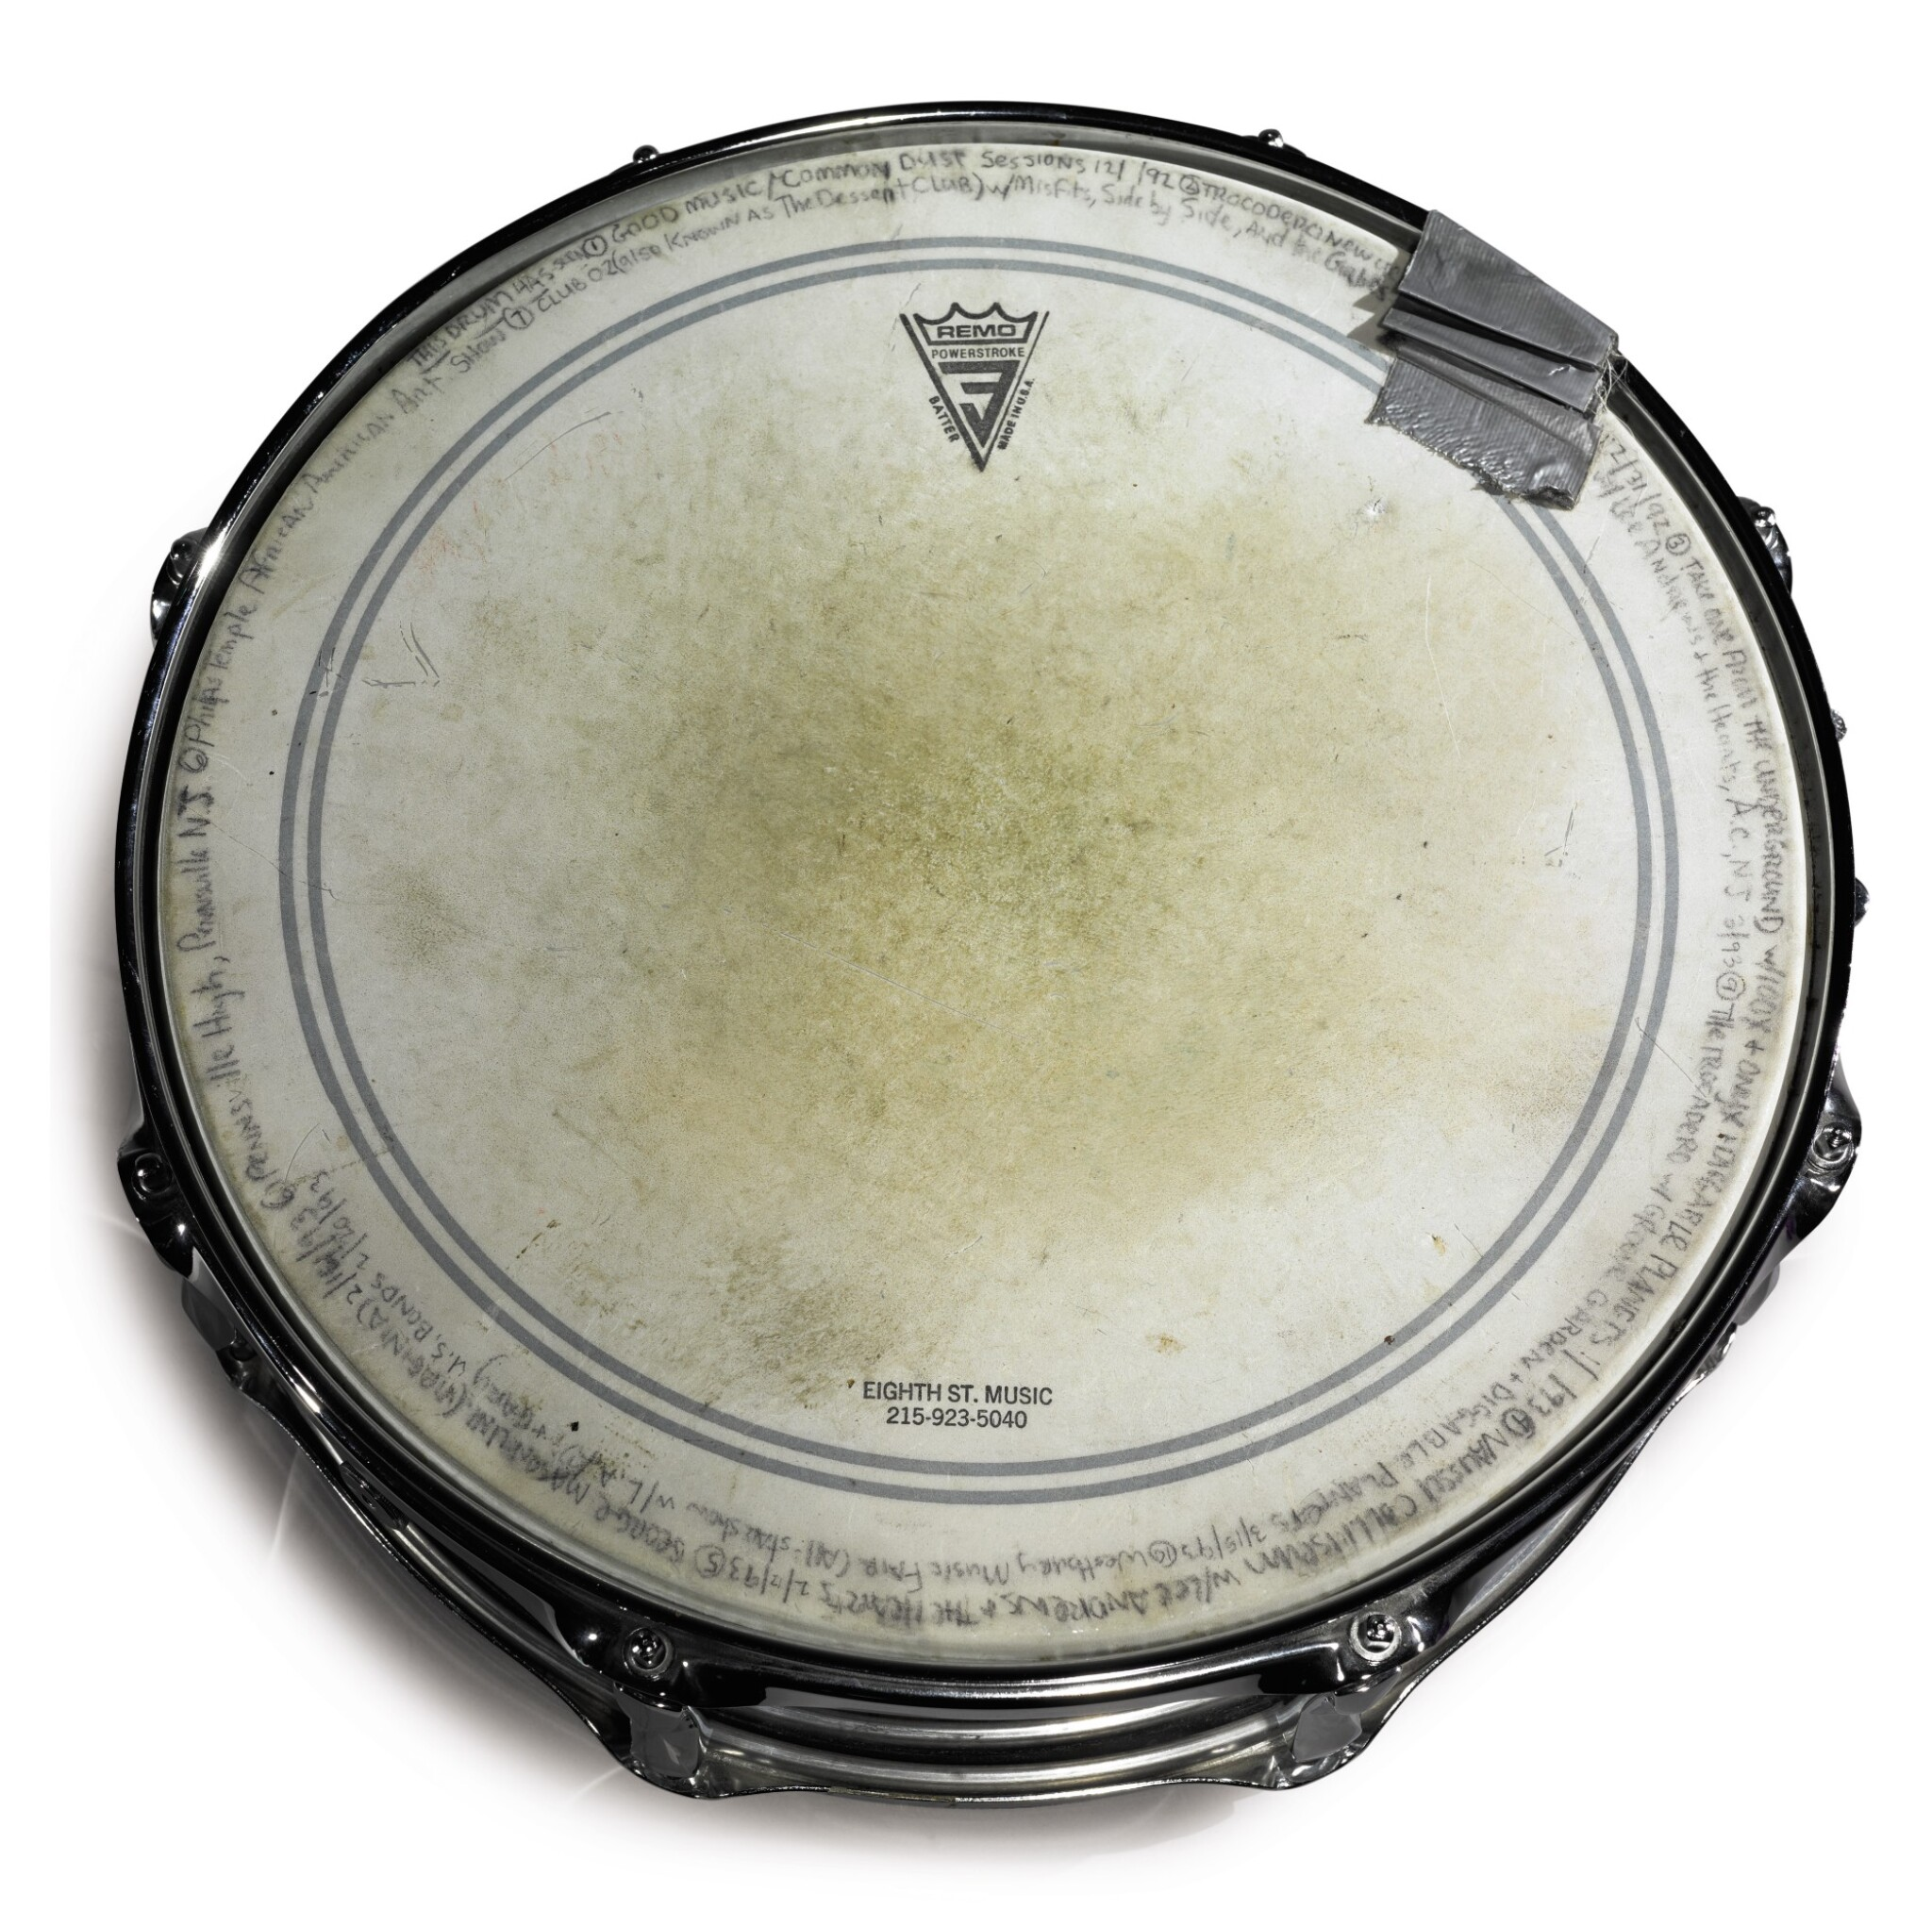 """View full screen - View 1 of Lot 85. [QUESTLOVE] YAMAHA TOUR-INSCRIBED SNARE DRUM AS USED LIVE AND IN STUDIO BY AHMIR """"QUESTLOVE"""" THOMPSON."""